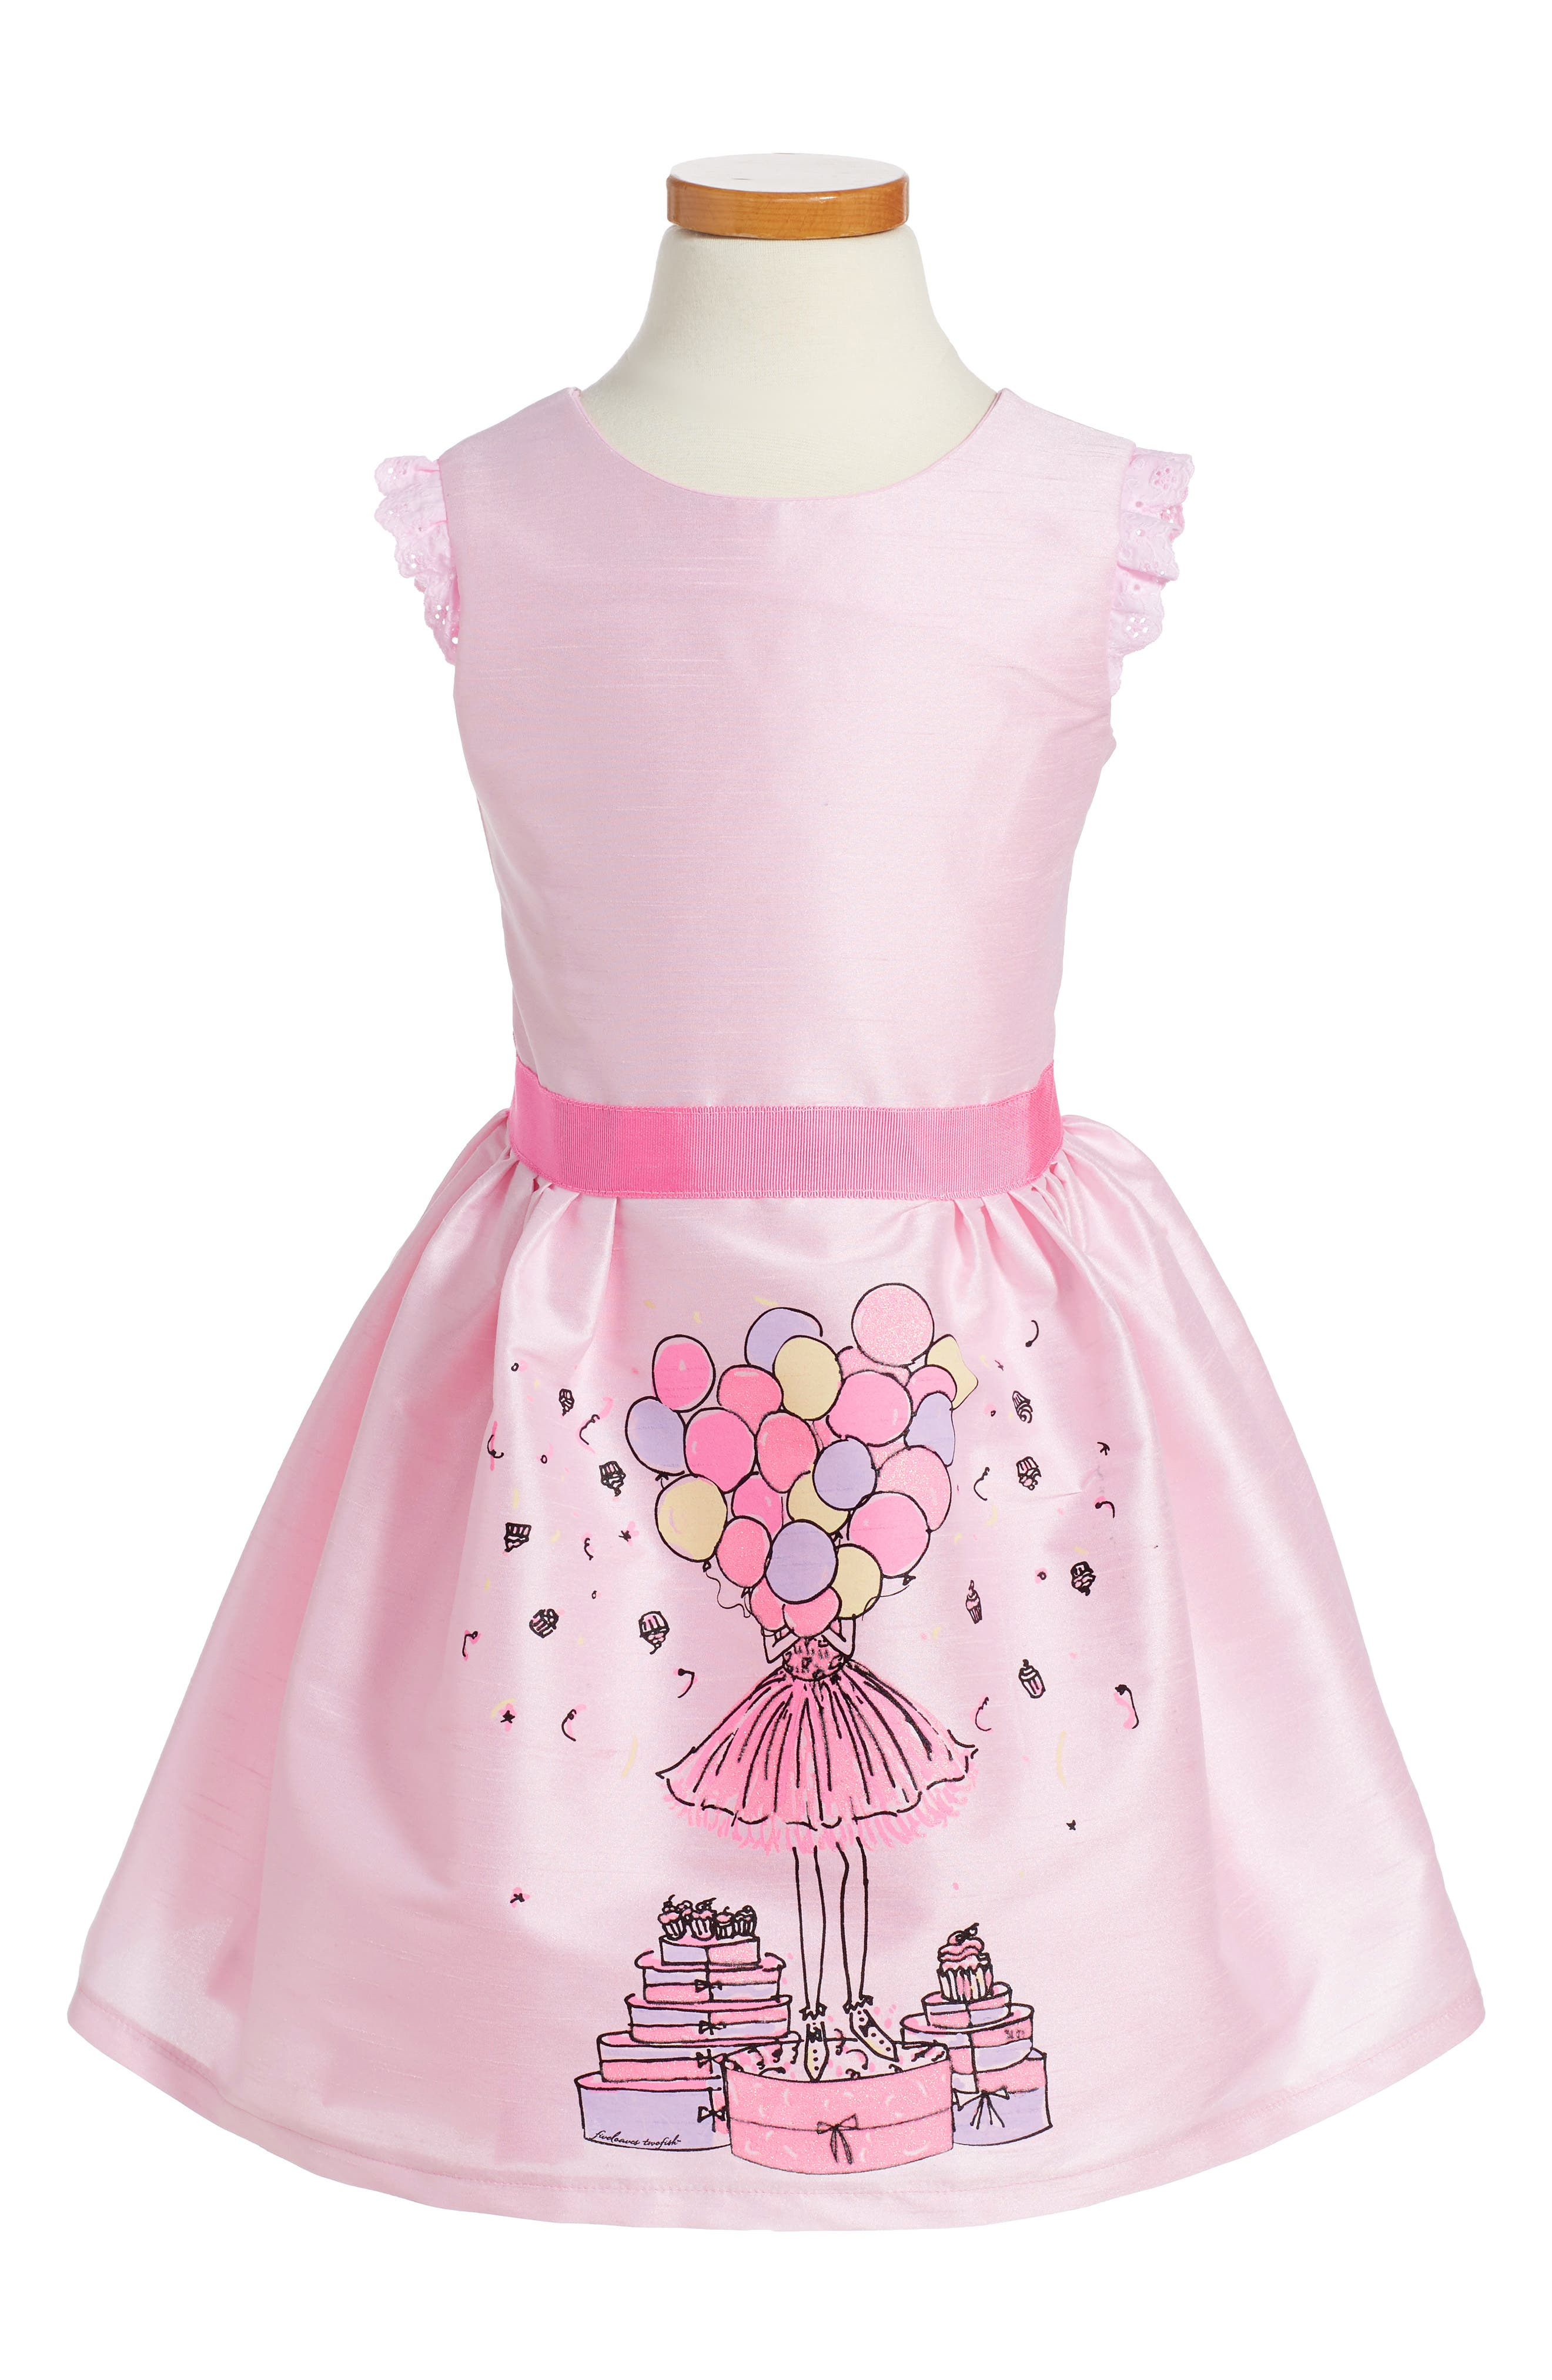 FIVELOAVES TWOFISH,                             Birthday Balloons Party Dress,                             Main thumbnail 1, color,                             650